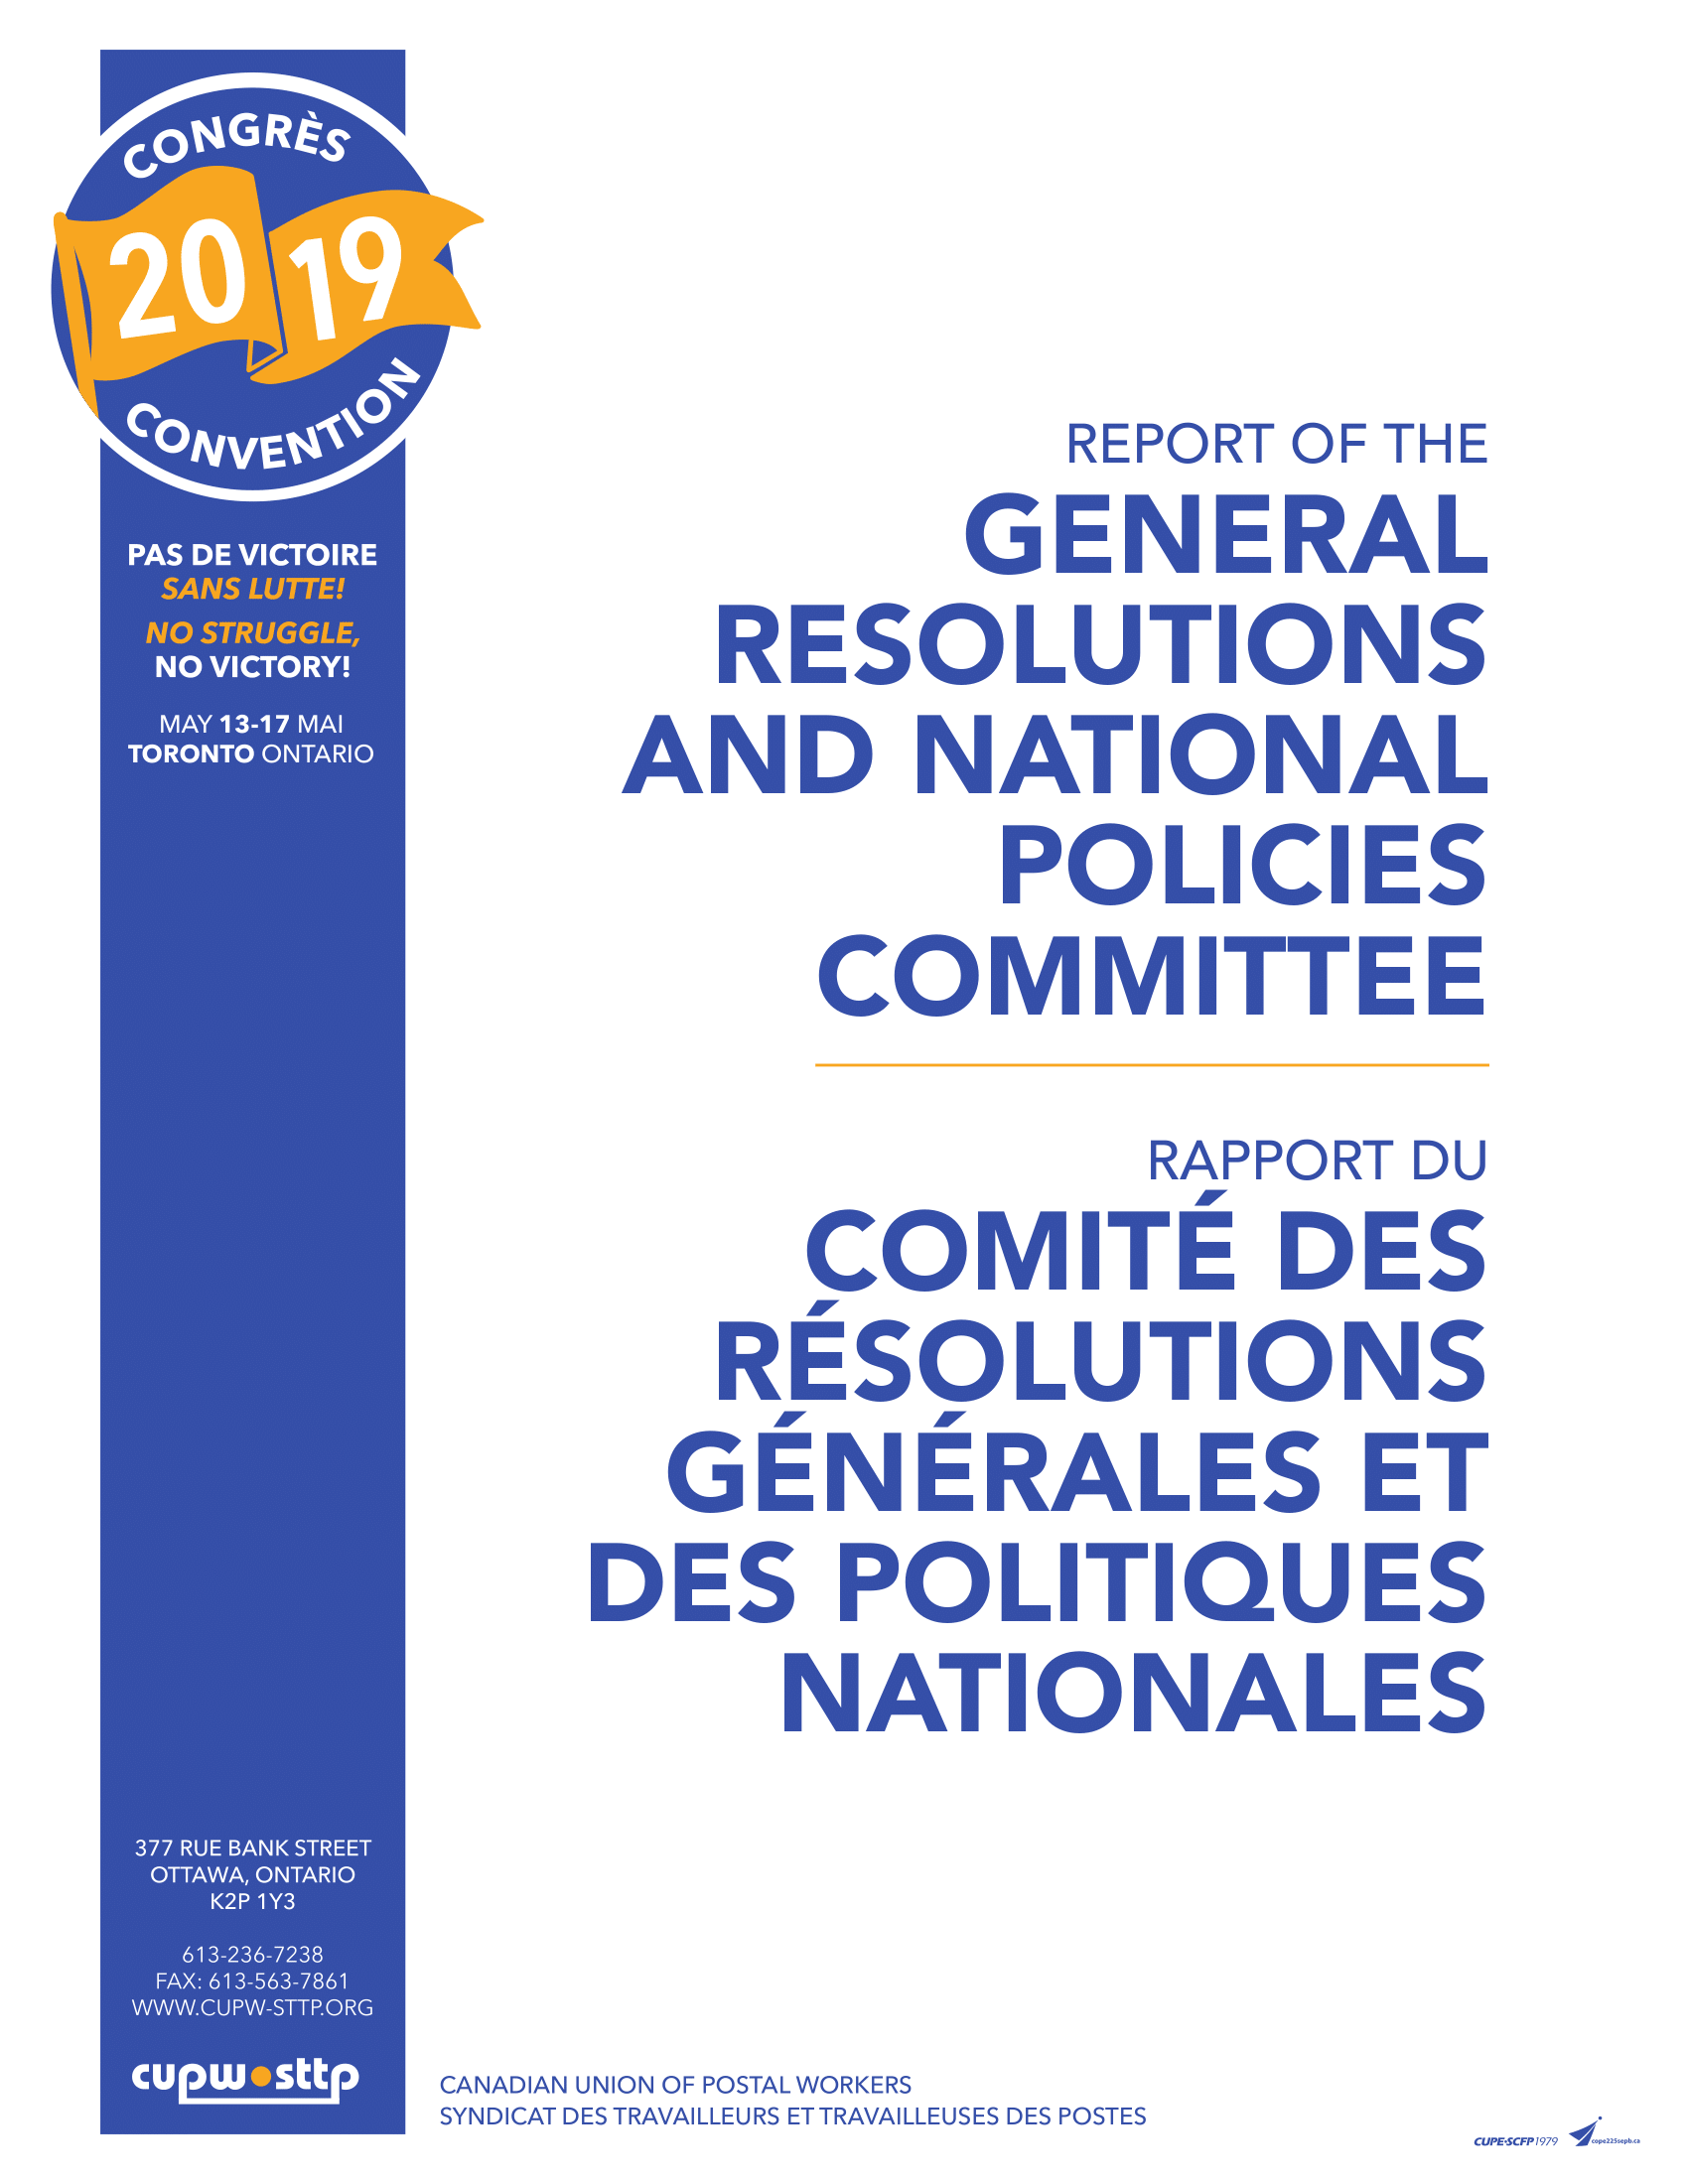 Report of the General Resolutions and National Policies Committee (2015)